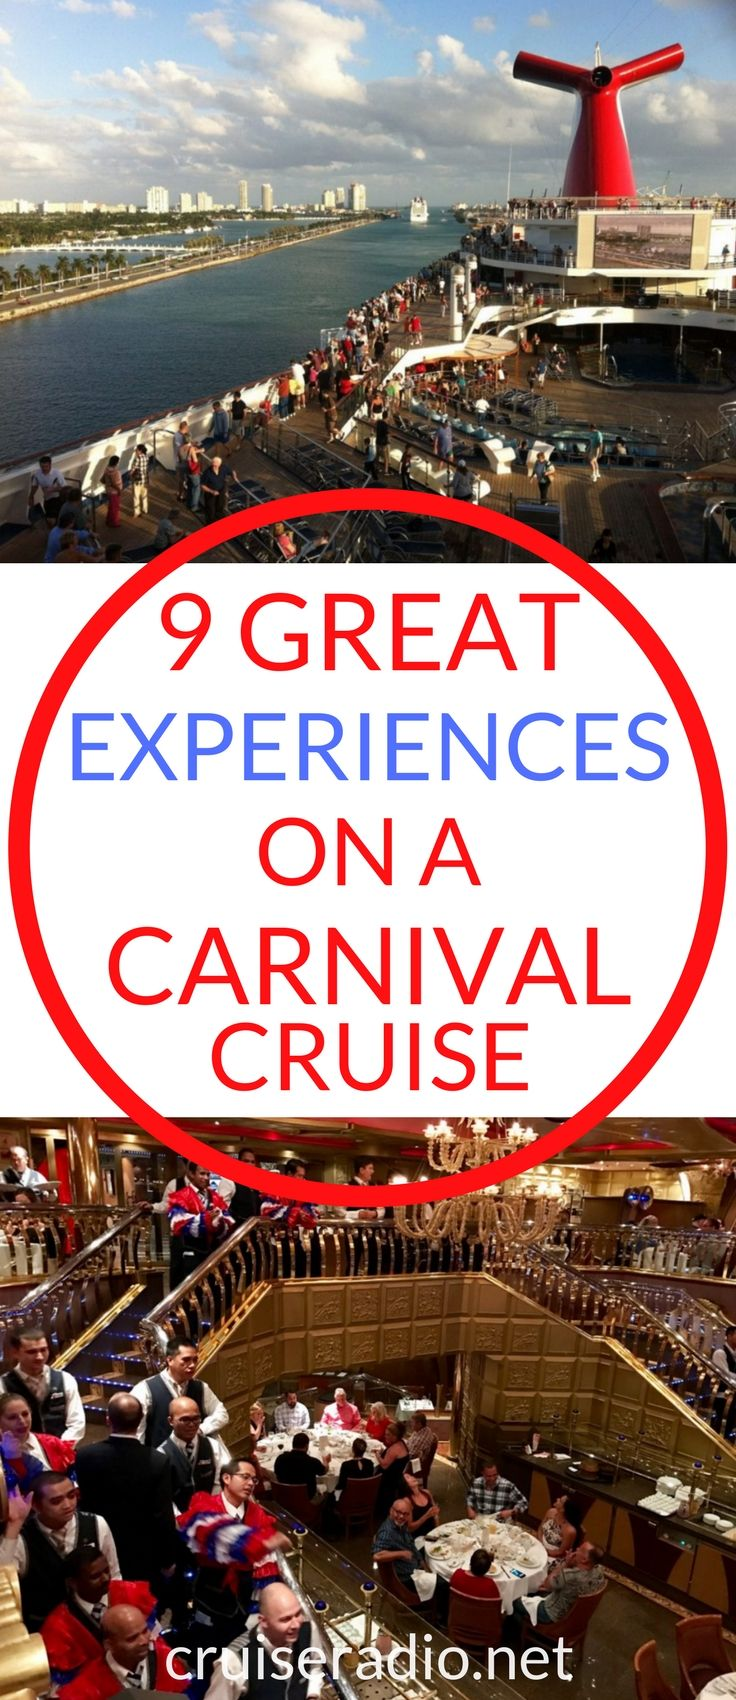 Whether it be the common special moments found on any cruise, or the unique entertainment offered, every Carnival cruise line has a list of must do items.